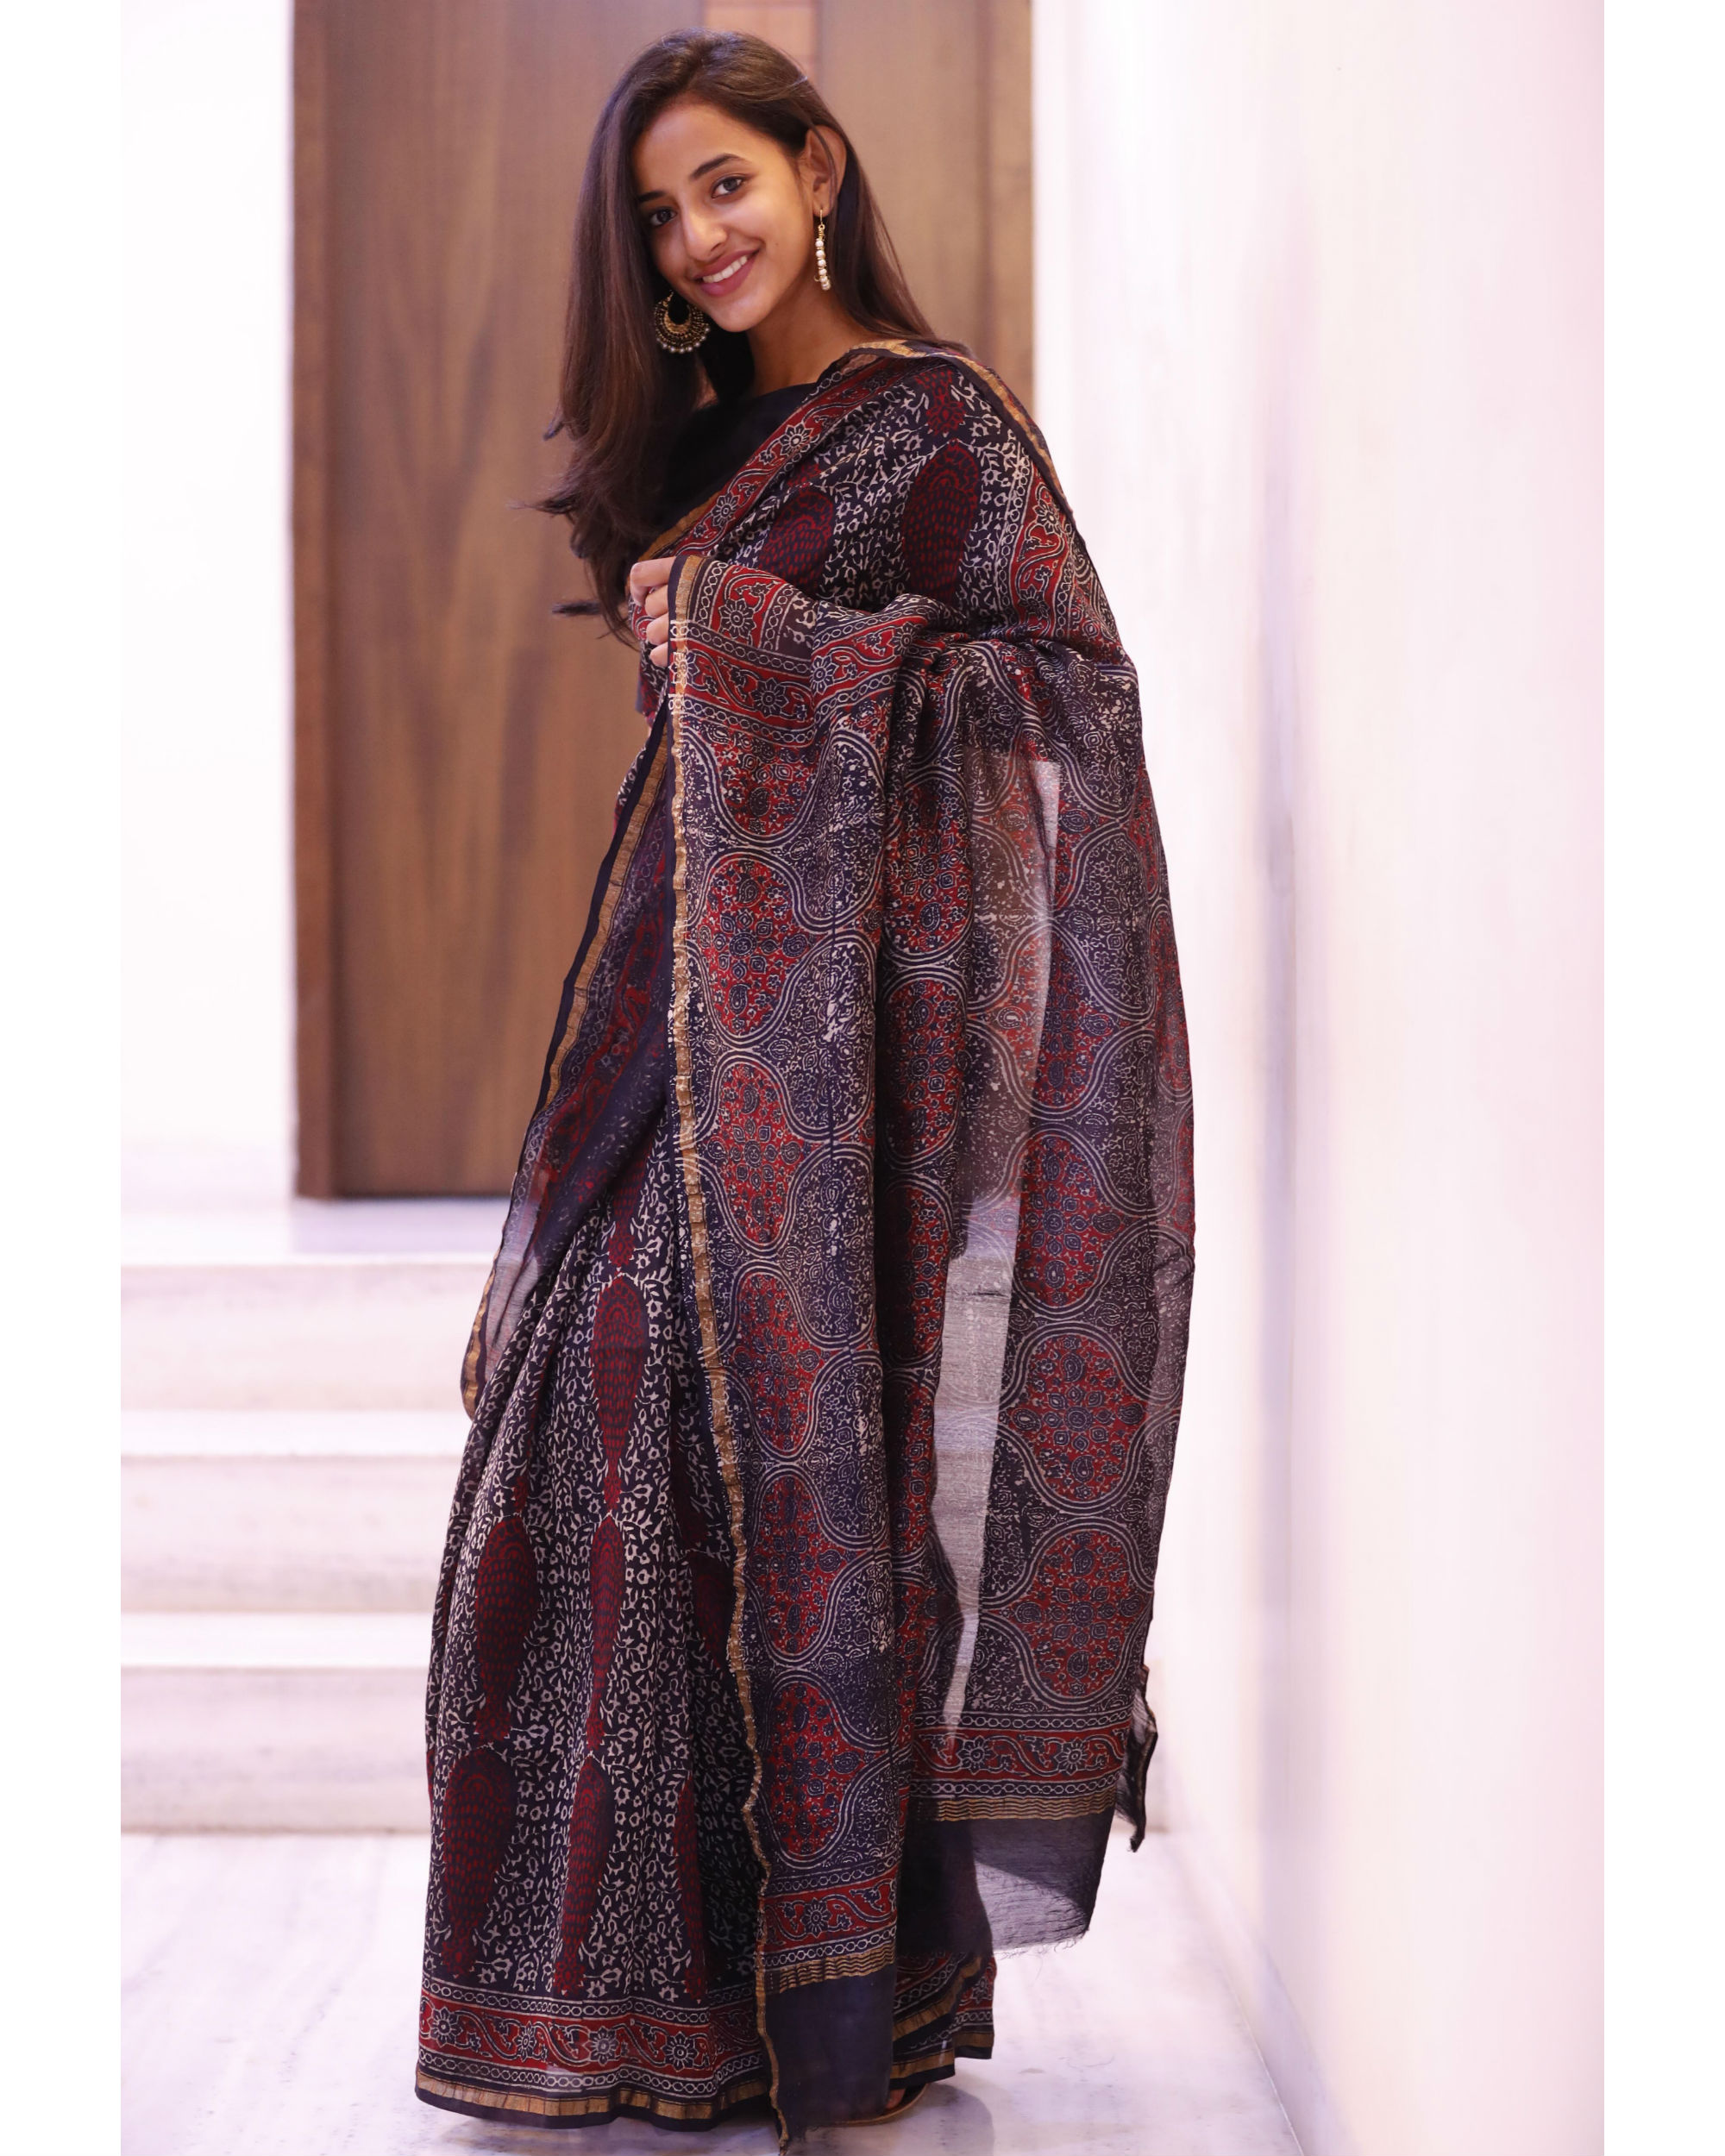 Black and maroon motif sari